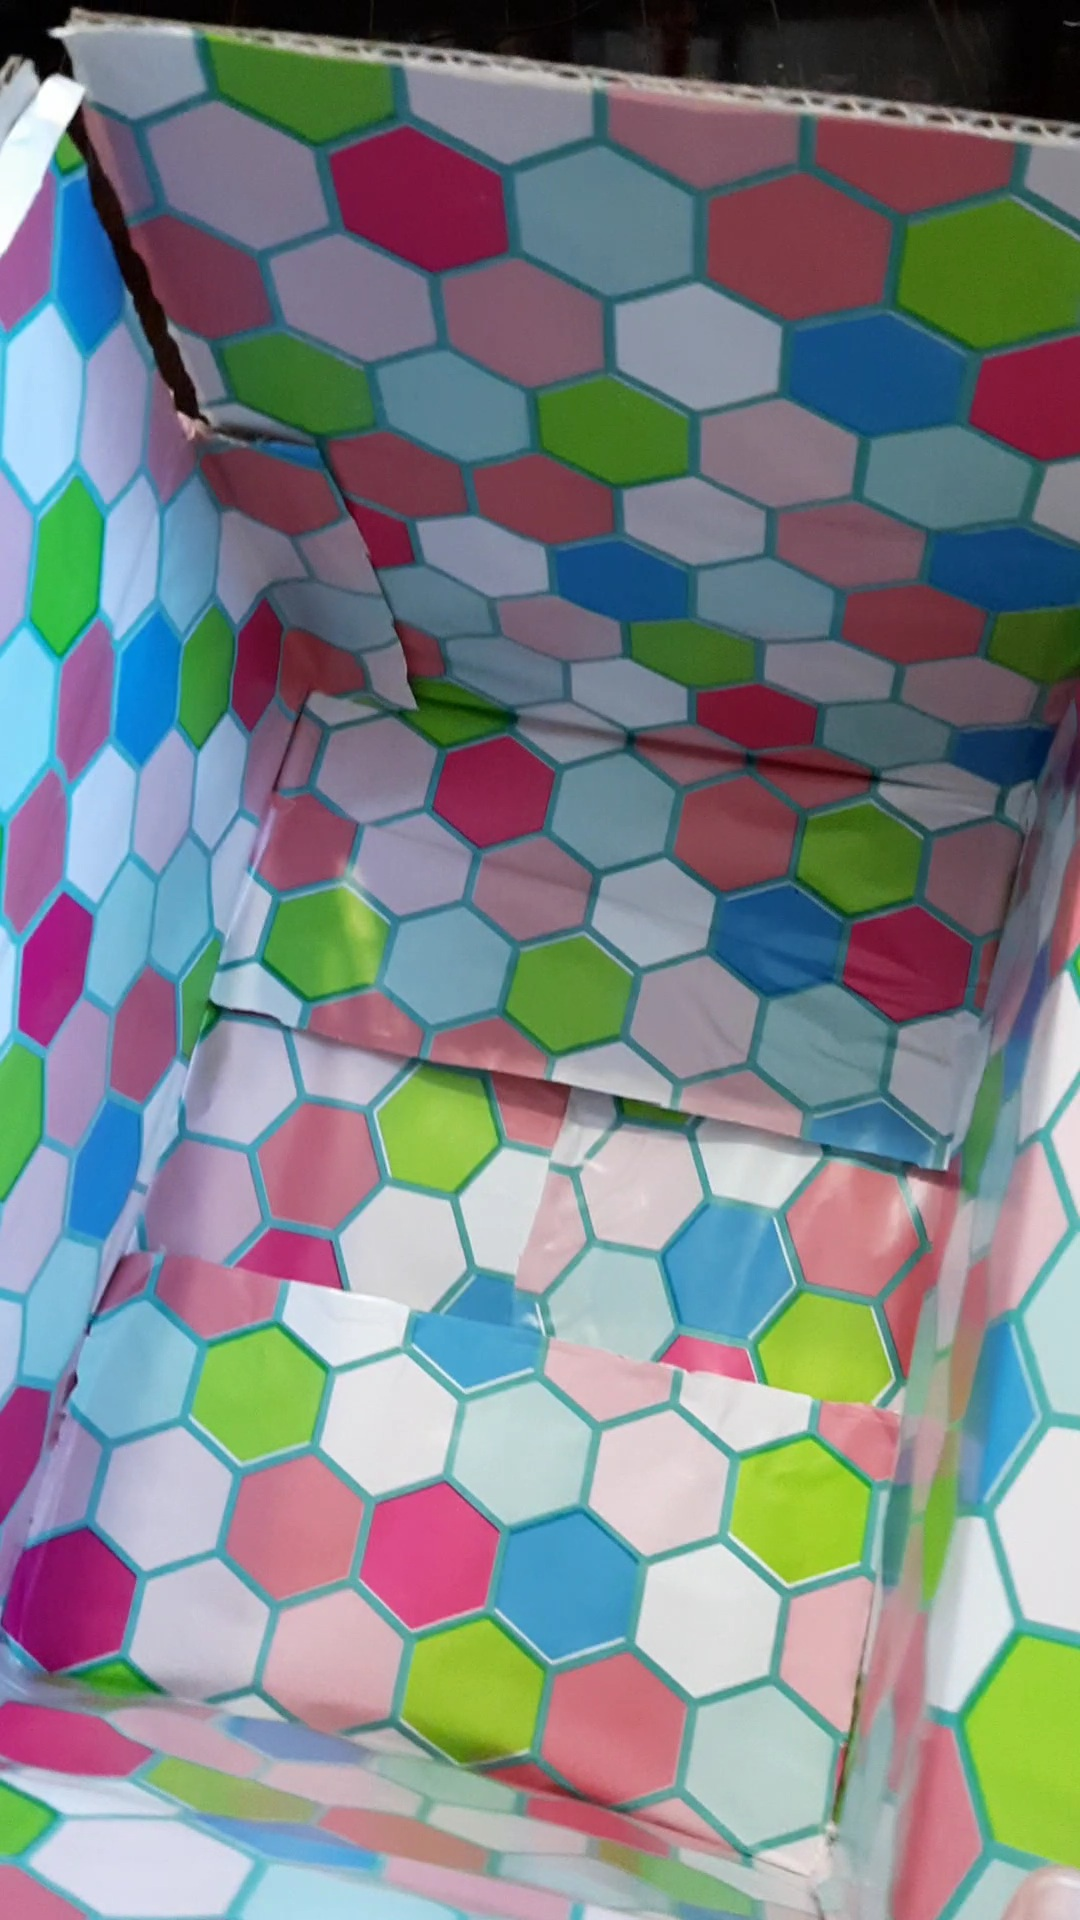 Here's how to easily wrap the inside of a box-- for gift giving or for care packages. This method is cheap, fast, and works on rectangular or square boxes. #carepackage #craft #crafting #wrapping #snailmail #deployment #christmasgifts